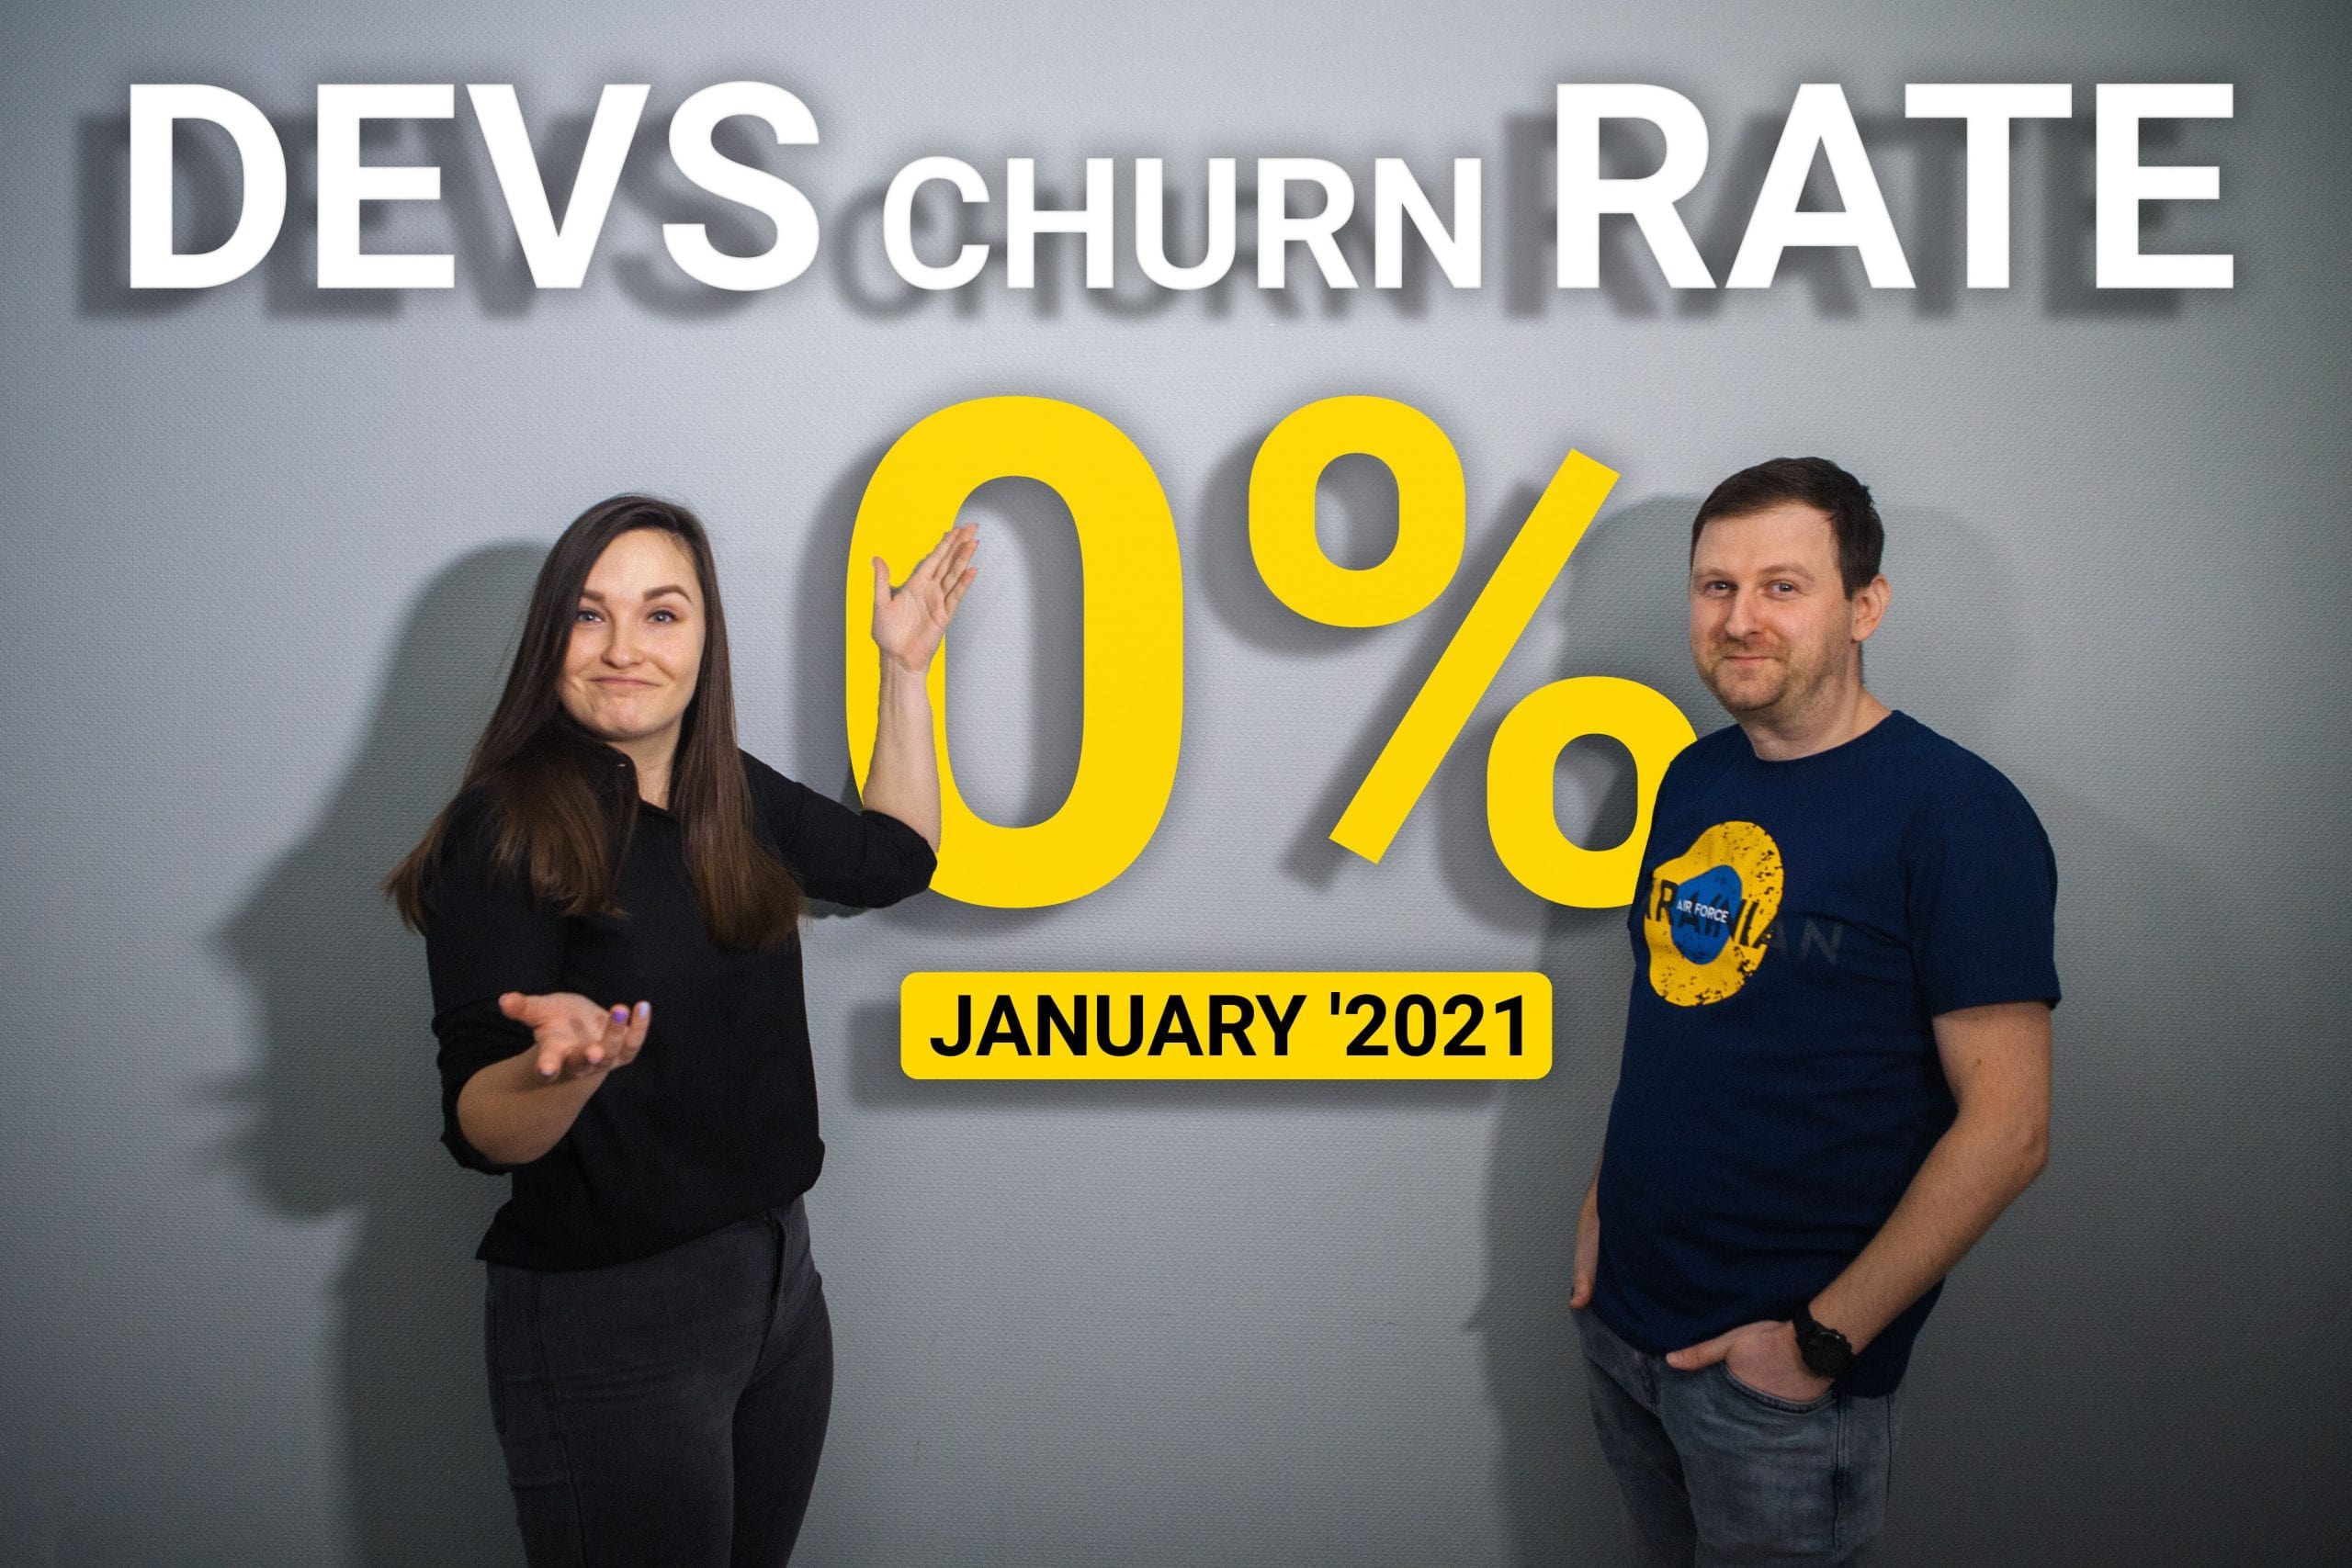 What Questions to Ask about Dedicated Developers Churn Rate